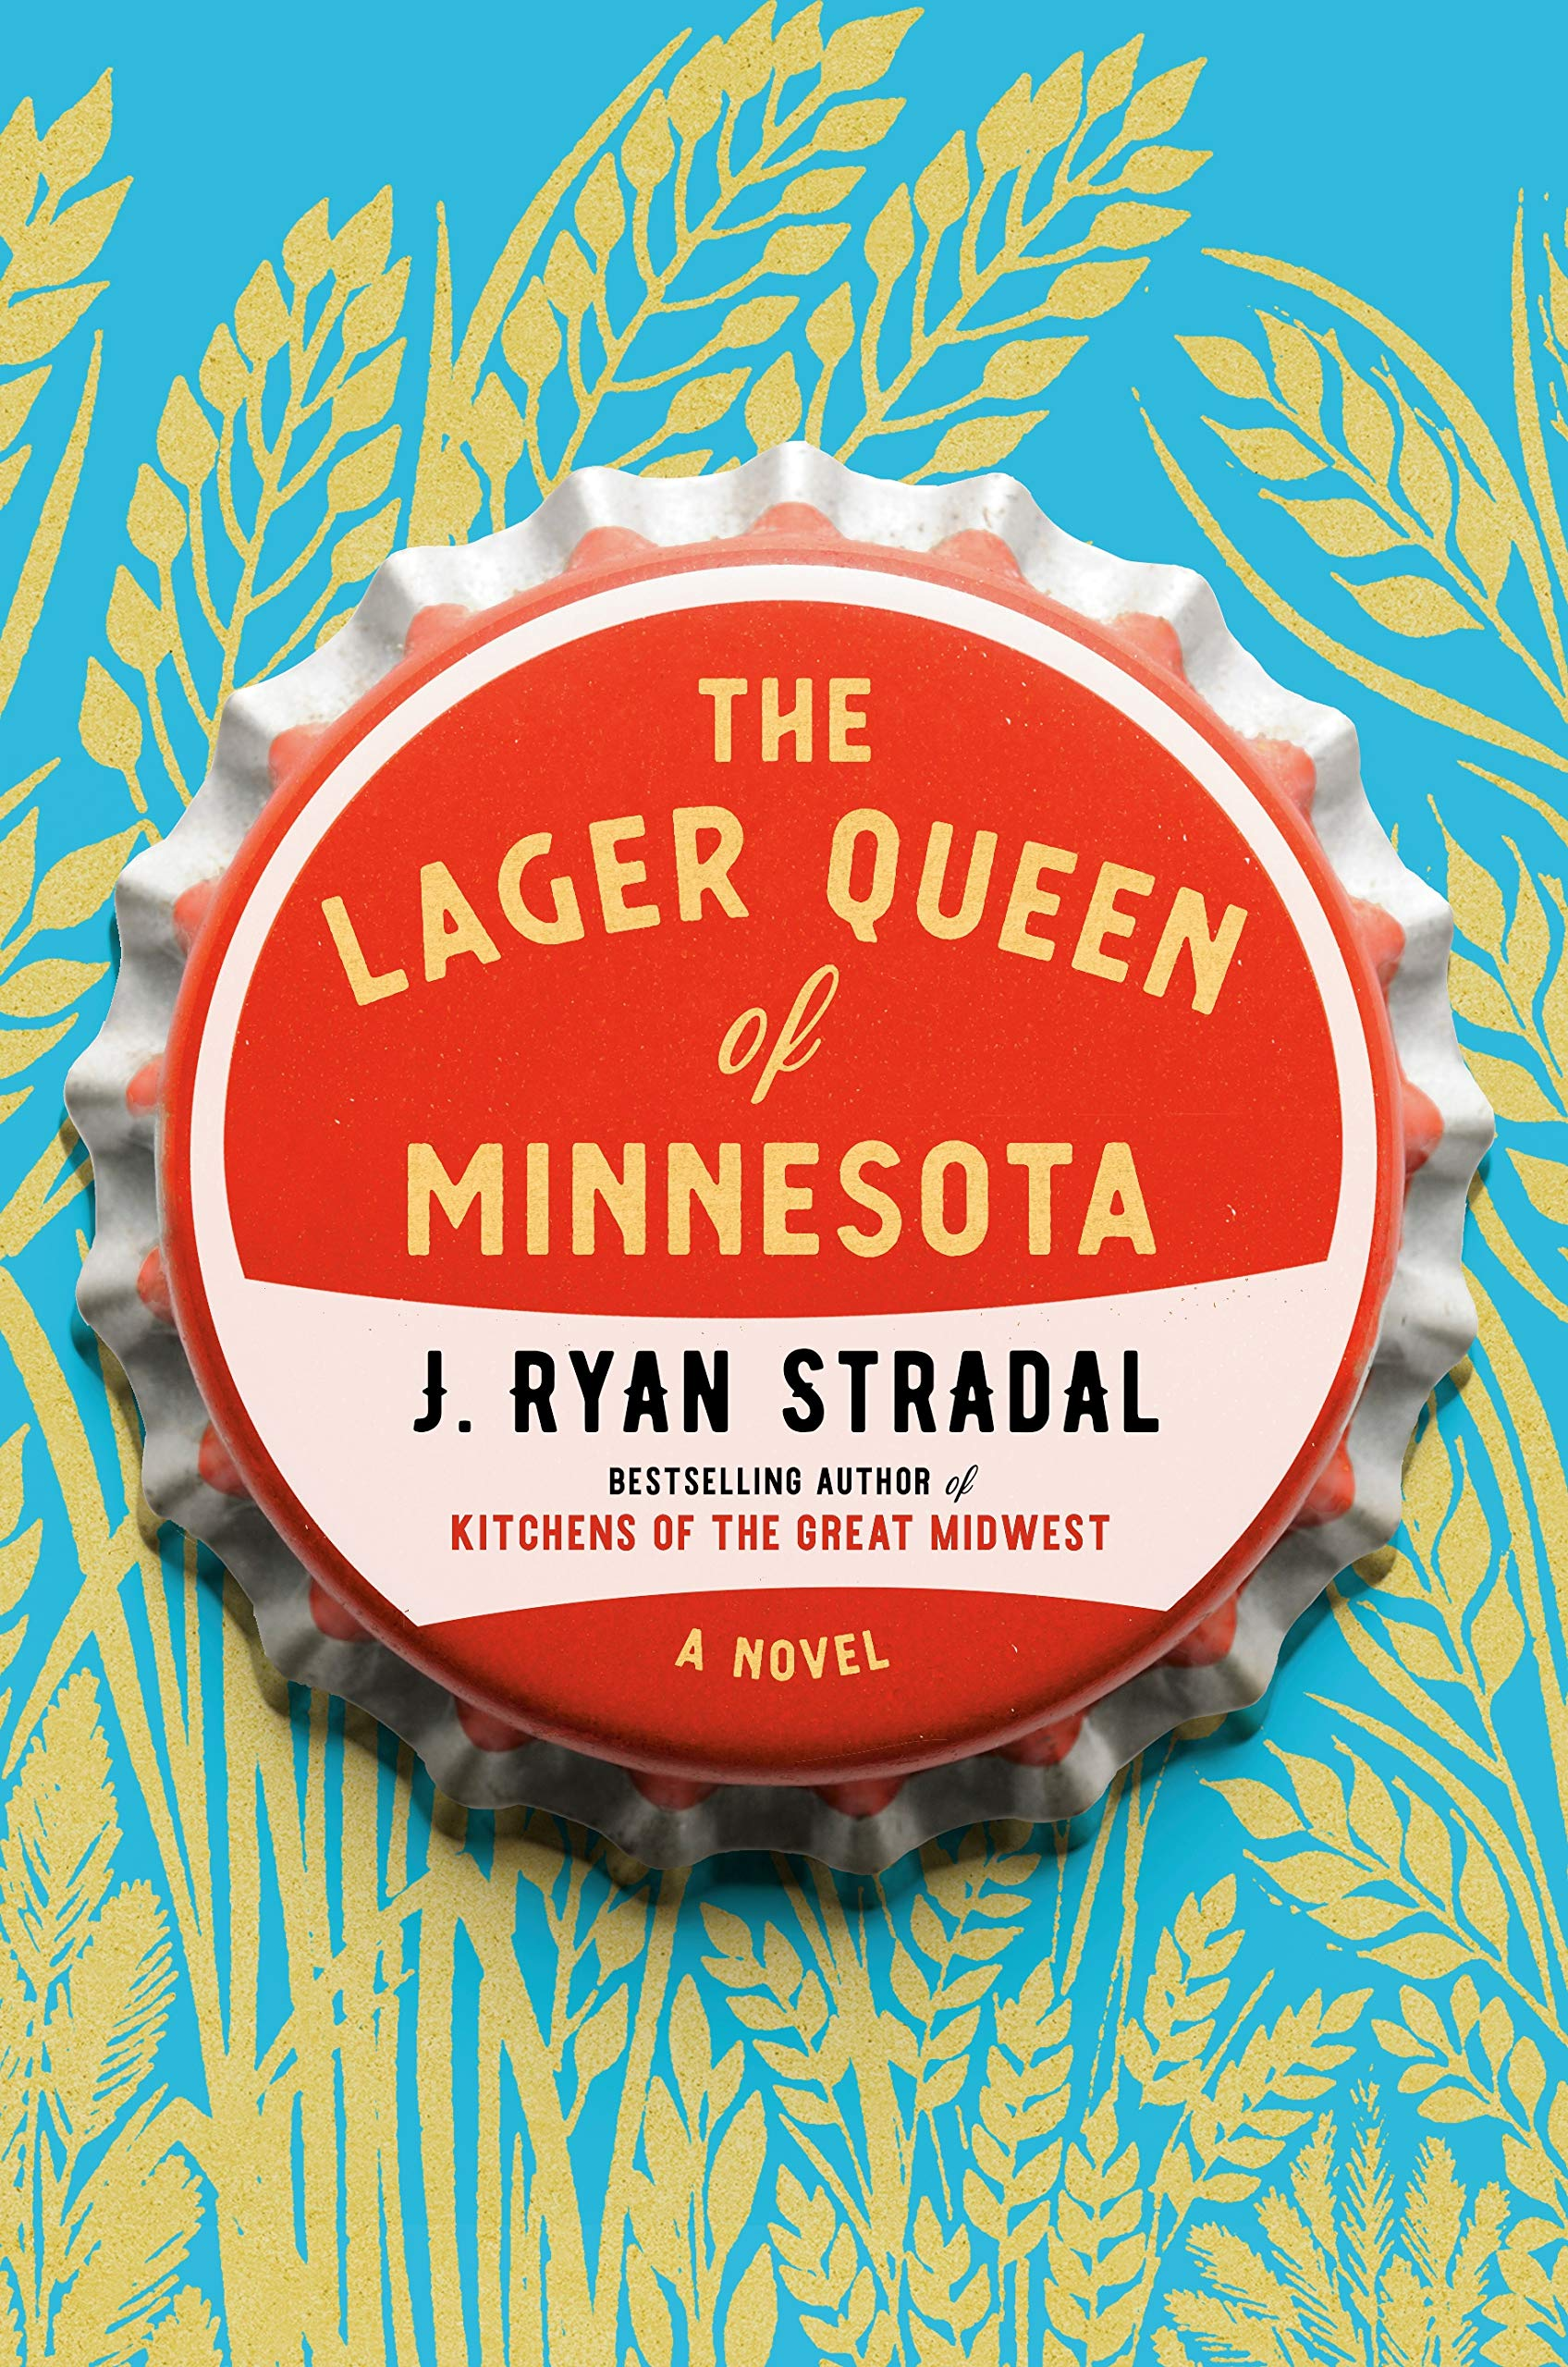 Lager Queen of MN-2